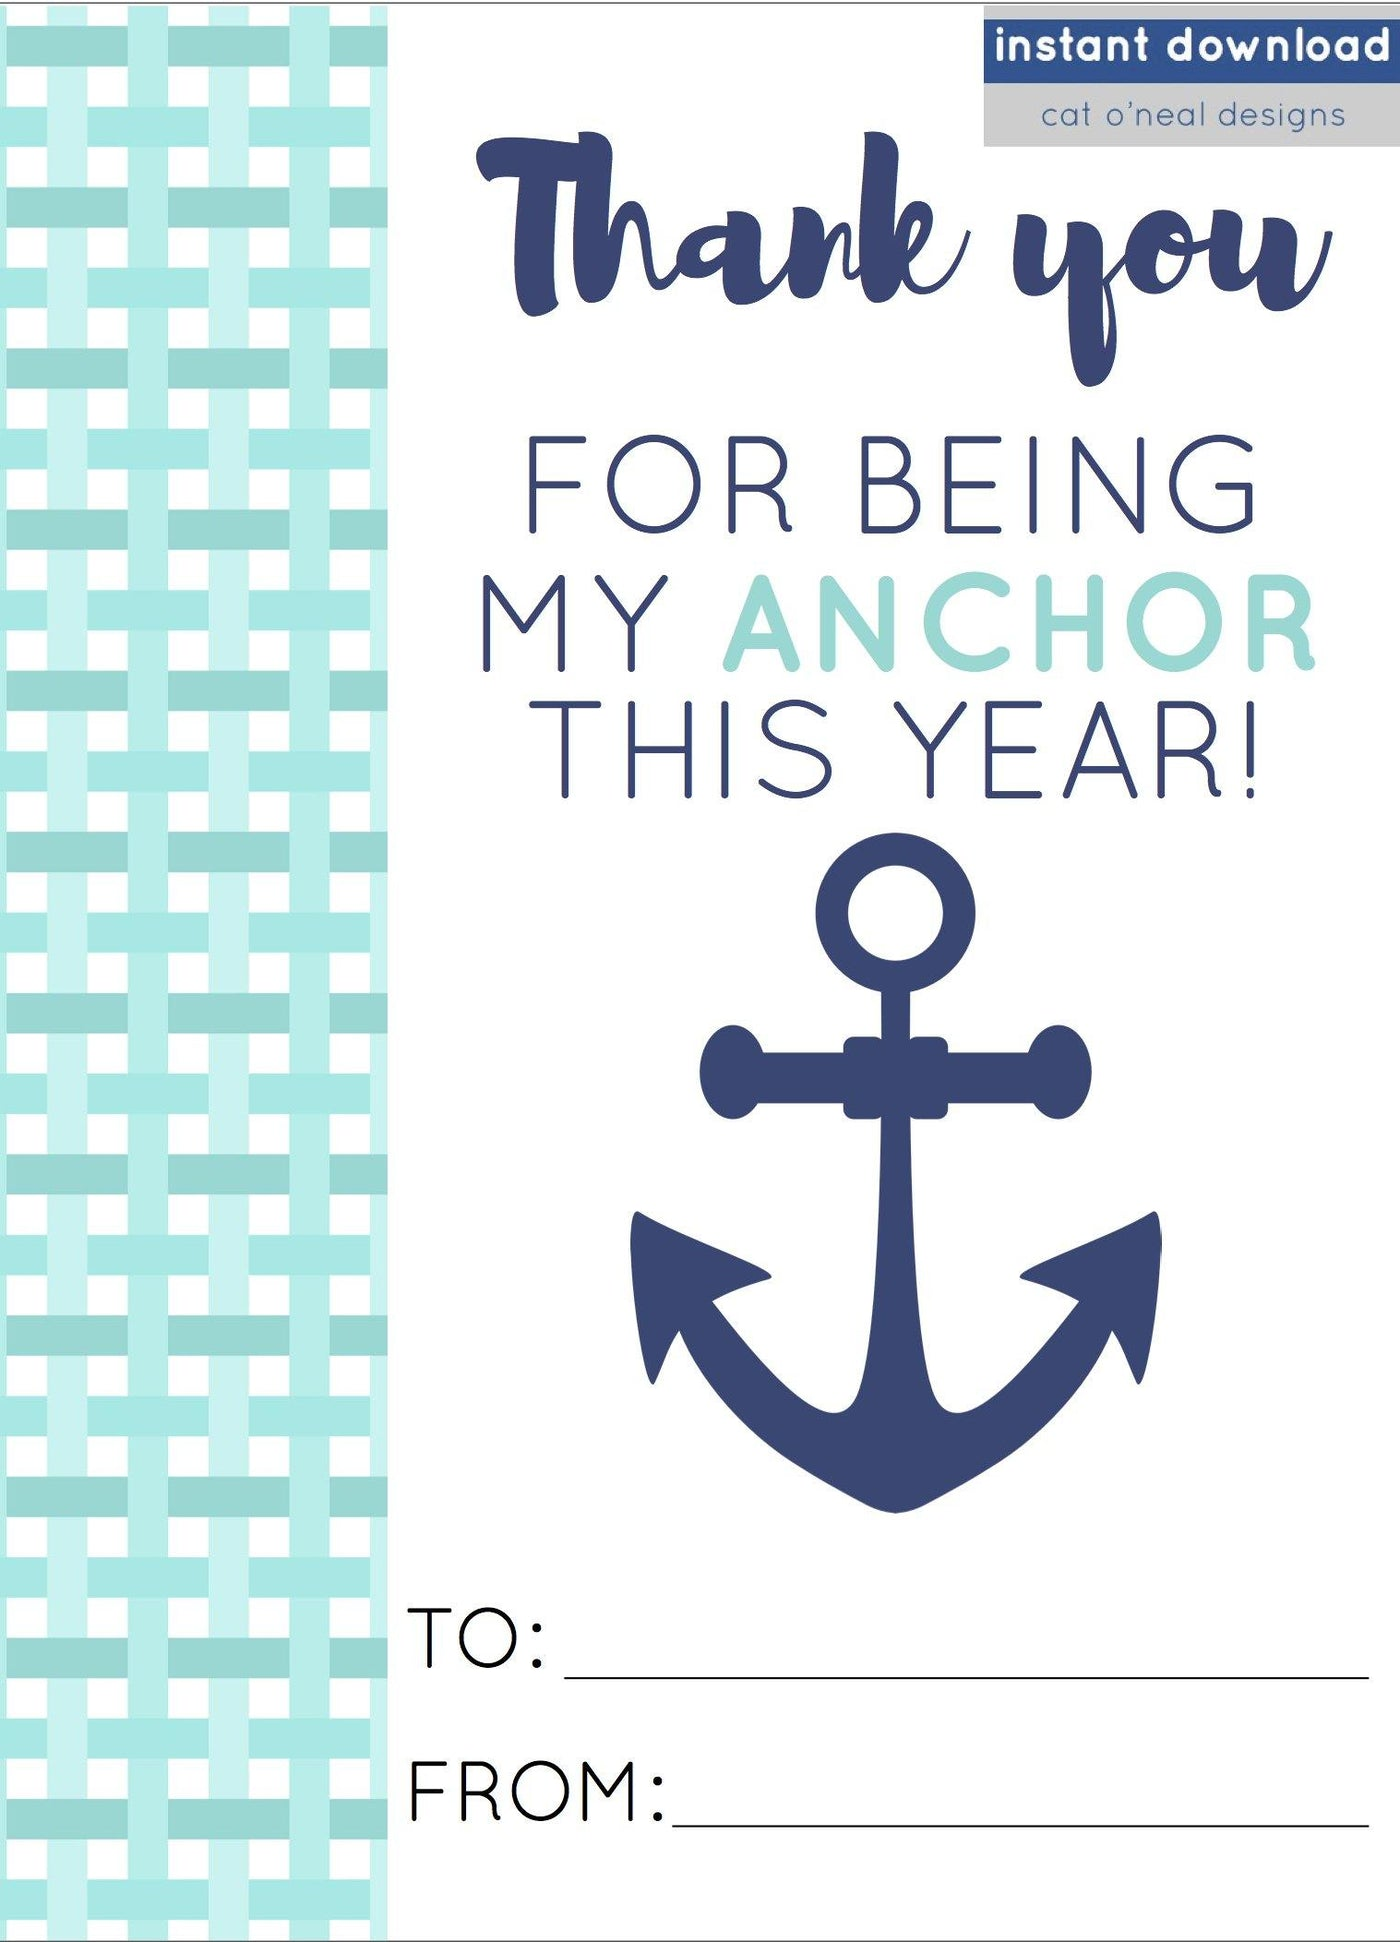 photograph relating to Anchor Printable called PRINTABLE THANK Yourself FOR Becoming MY ANCHOR THIS Yr